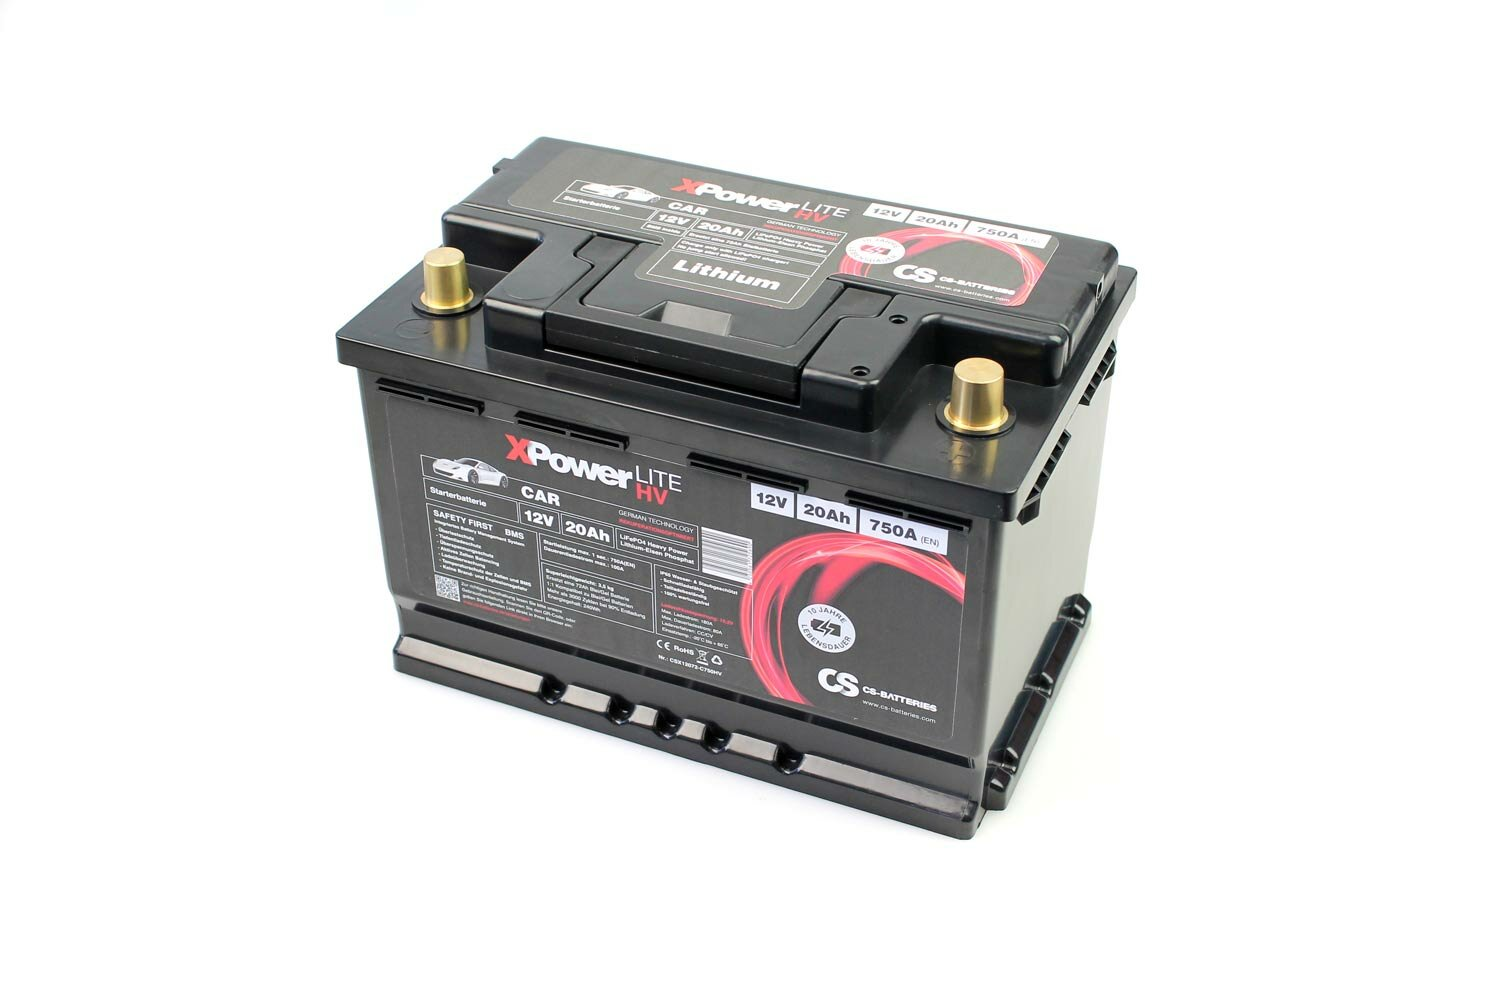 Lithium LiFePO4 Auto Batterie 12V / 20Ah BMS -750A(EN) Peak  279 x 175 x 189mm  ~3,6kg-/ Pb-eq 72AH -Rekuperation-